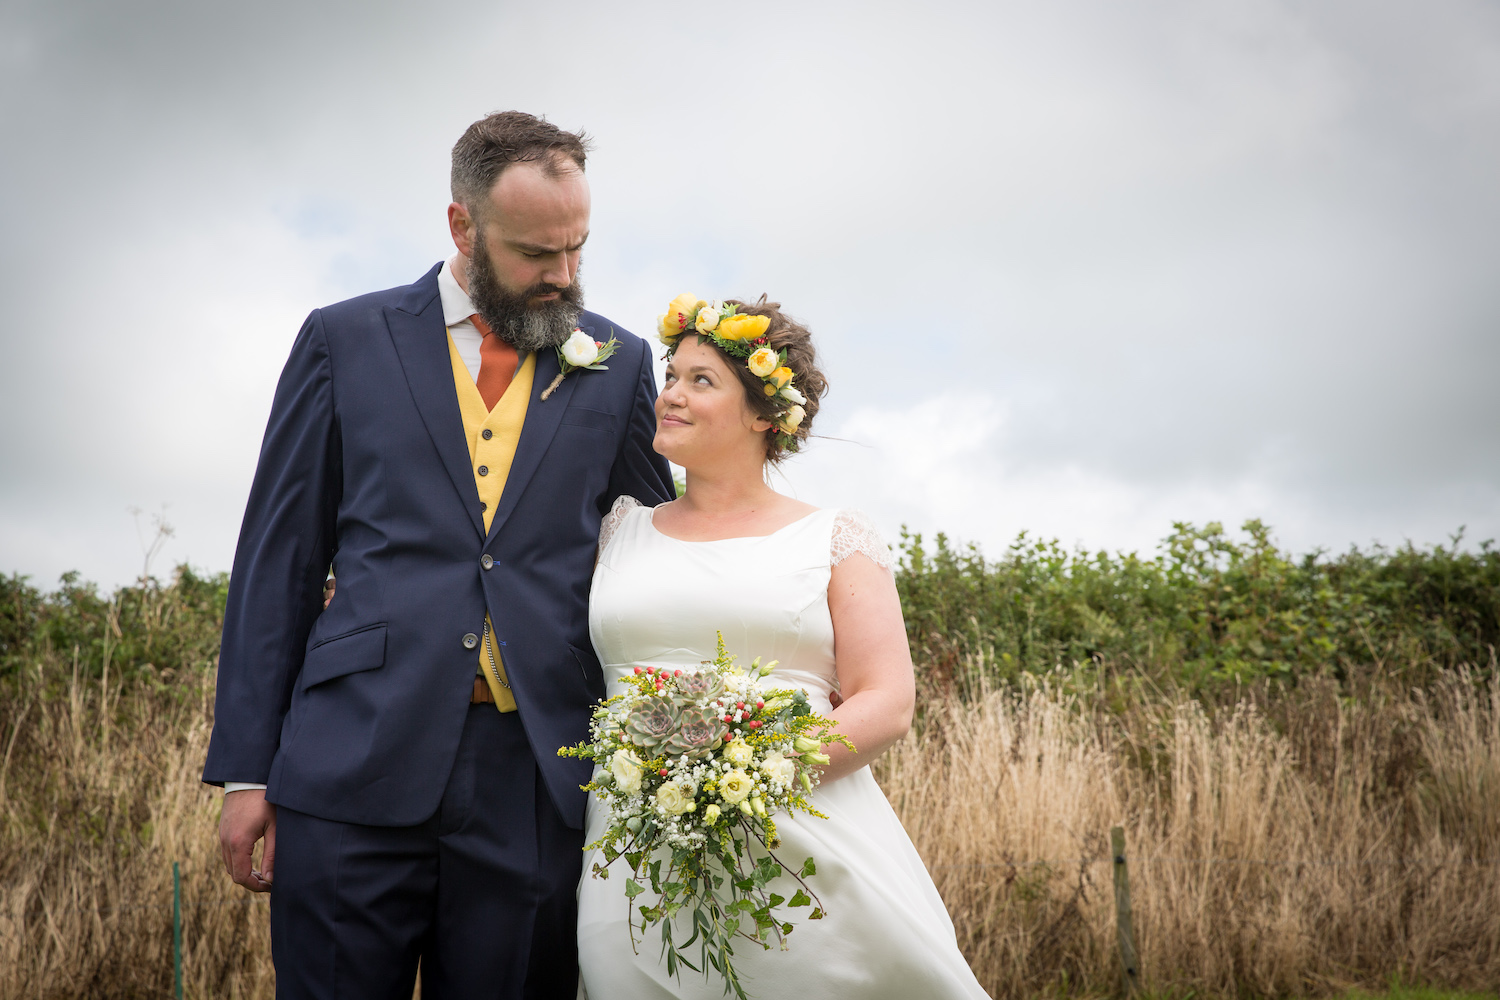 """Andy's been there with great photography for me over the years, for everything from band shoots, to business promotion, to my wedding! Always a great guy to have around, and produces brilliant results too. I'd always recommend him"" - - Clare & Ben"